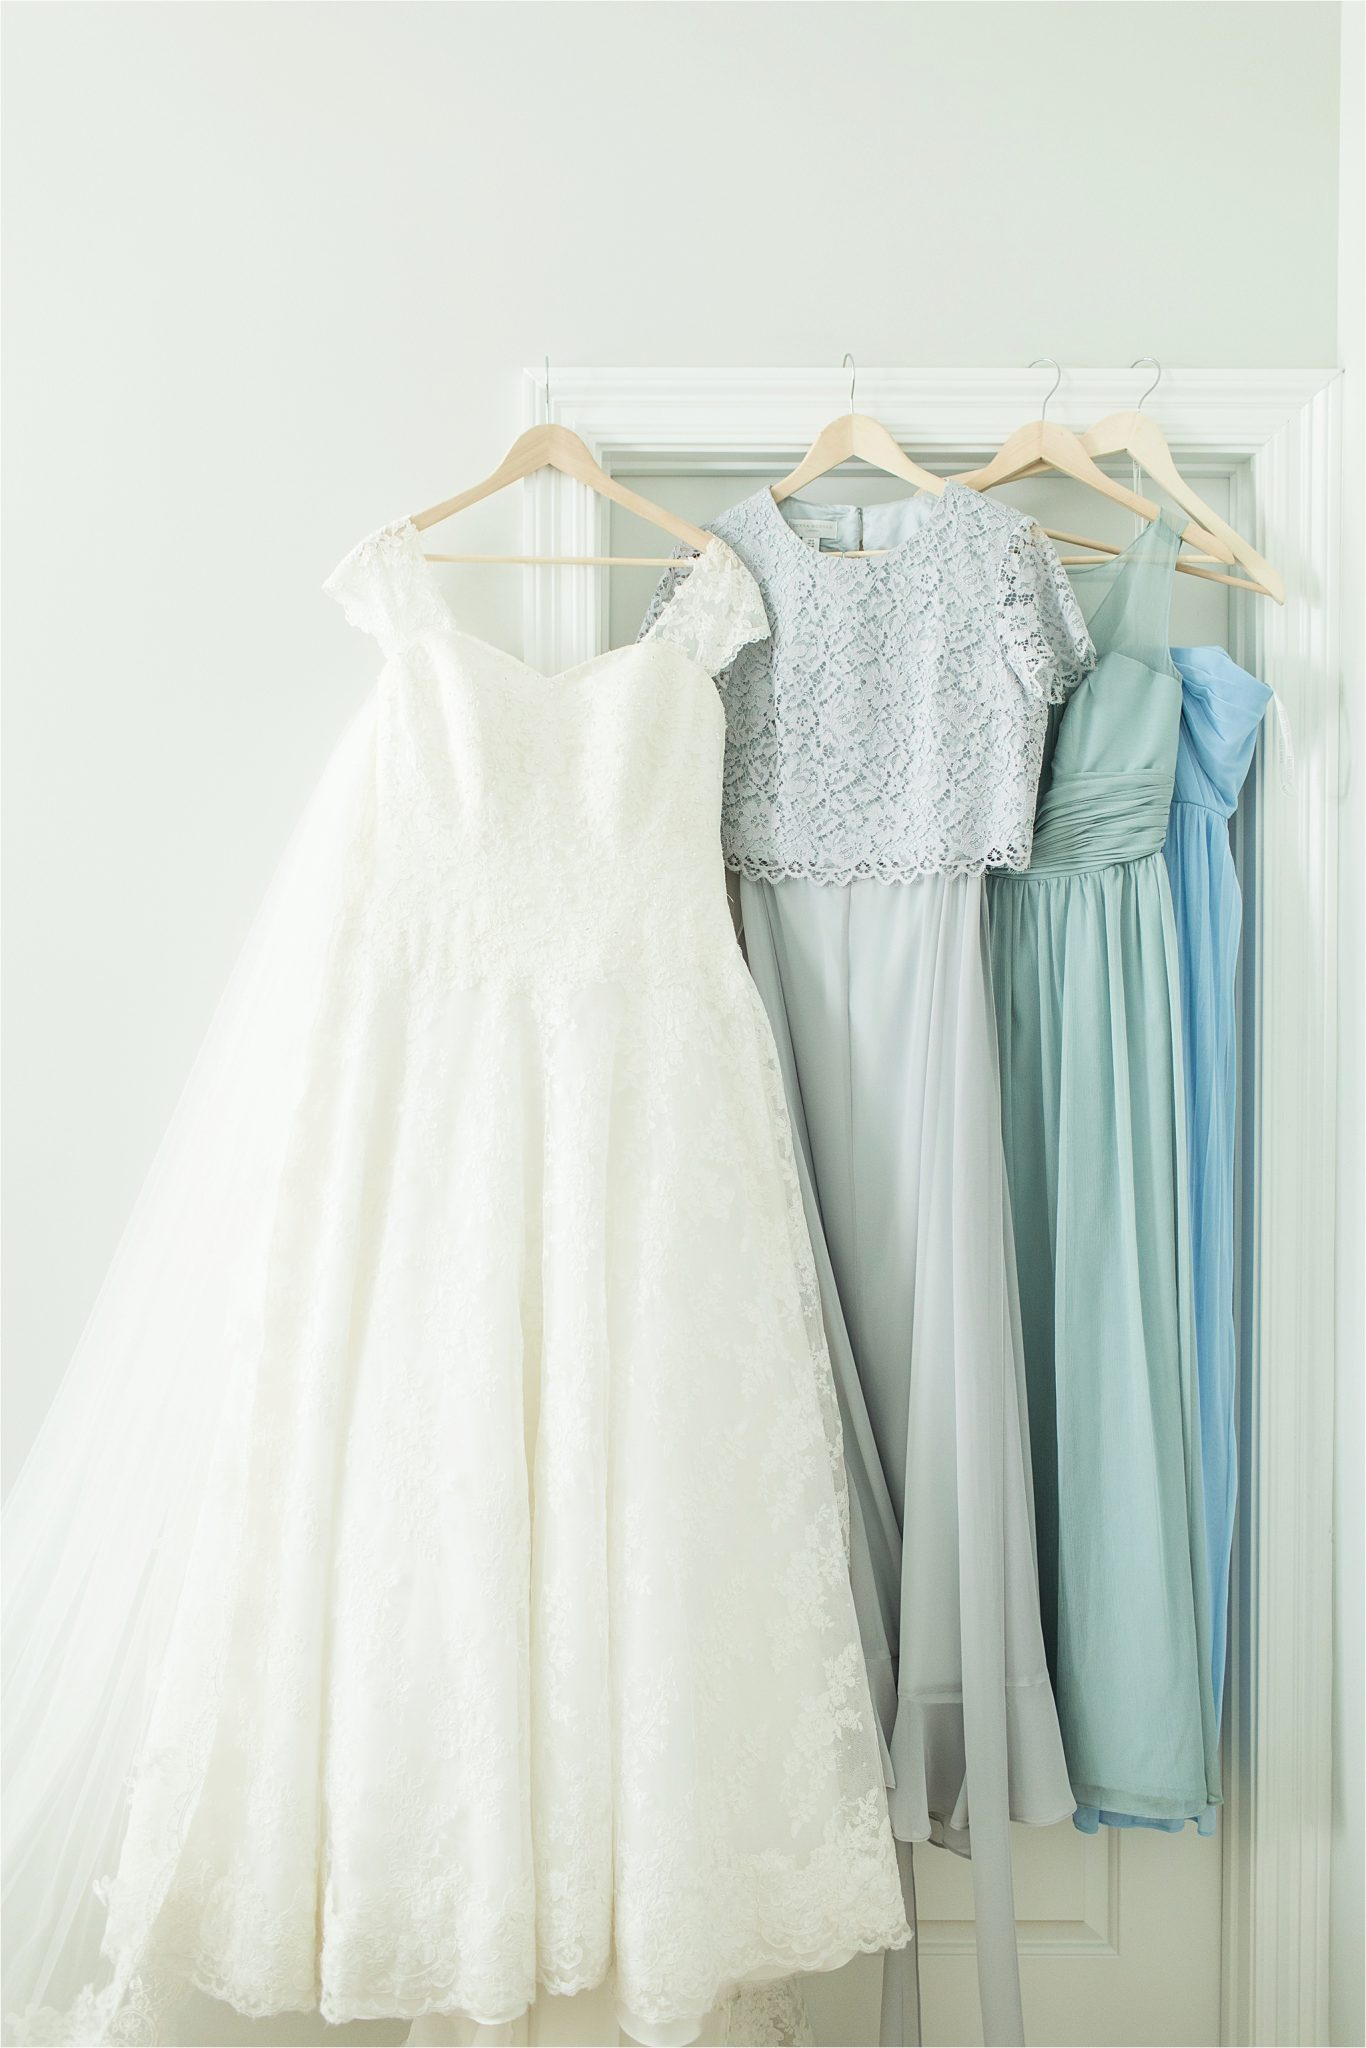 Wedding Dress-Bridesmaids Dress-Pastel Themed Wedding-The Chapel at the Waters-Montgomery Alabama Photographer-Miles & Meredyth-Pastel-Blue Wedding Theme